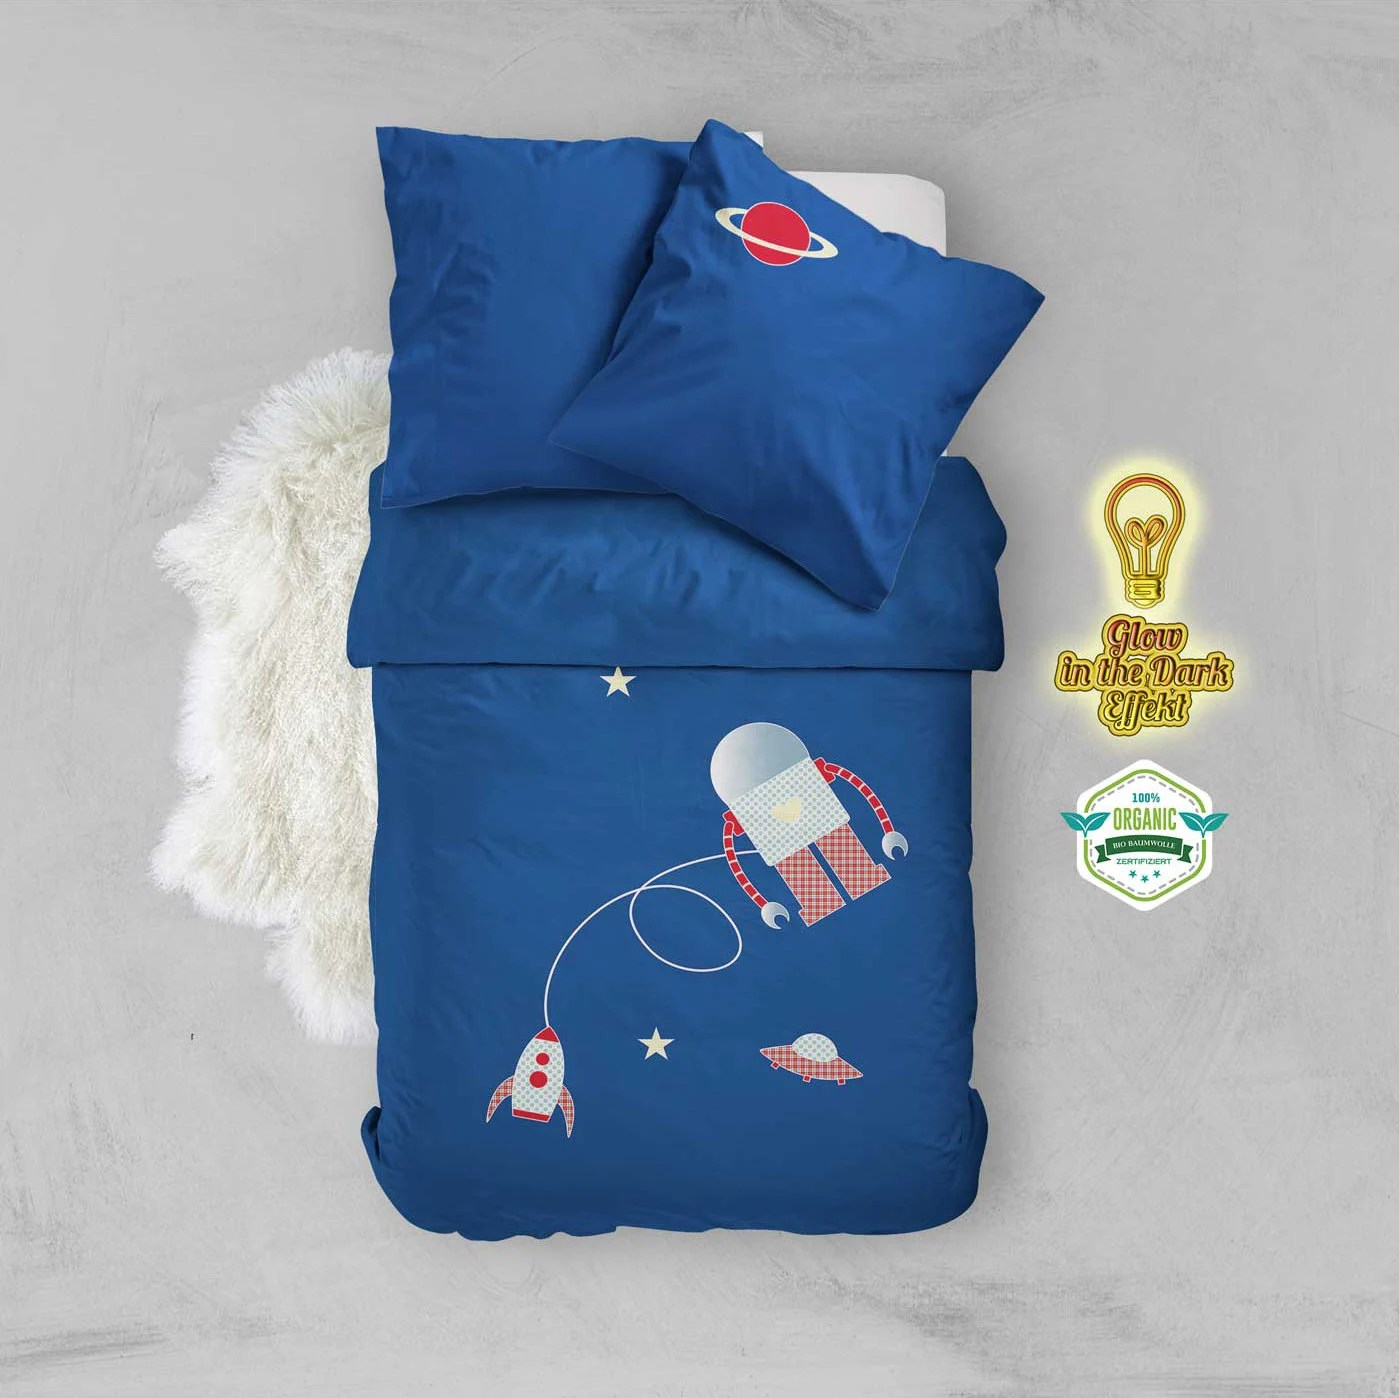 Kinderbettwäsche Organic Boy Bedding With Rocket And Robot Glow In The Dark Organic Cotton